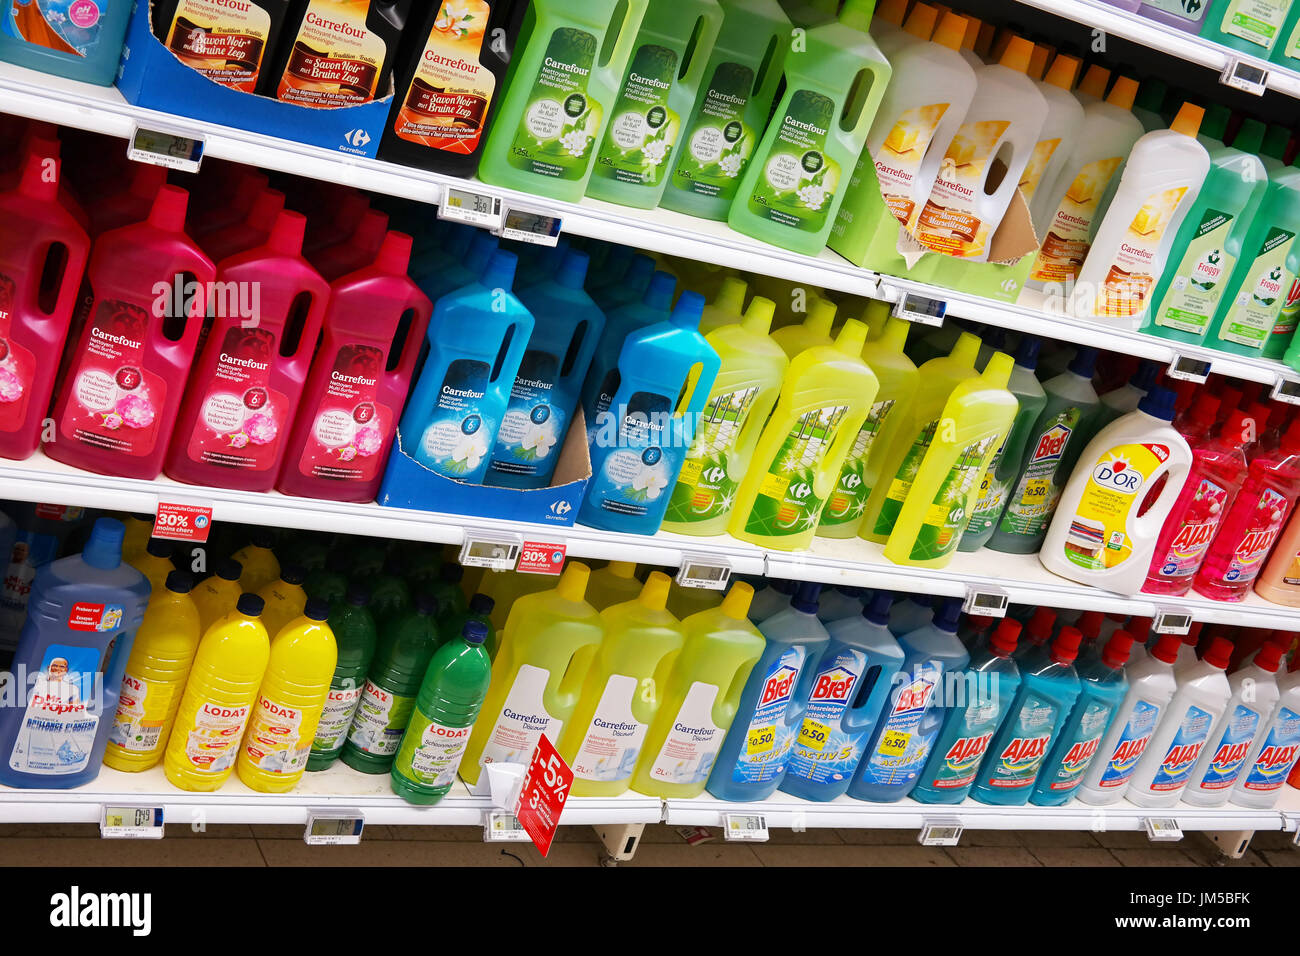 Cleaning products in a supermarket - Stock Image